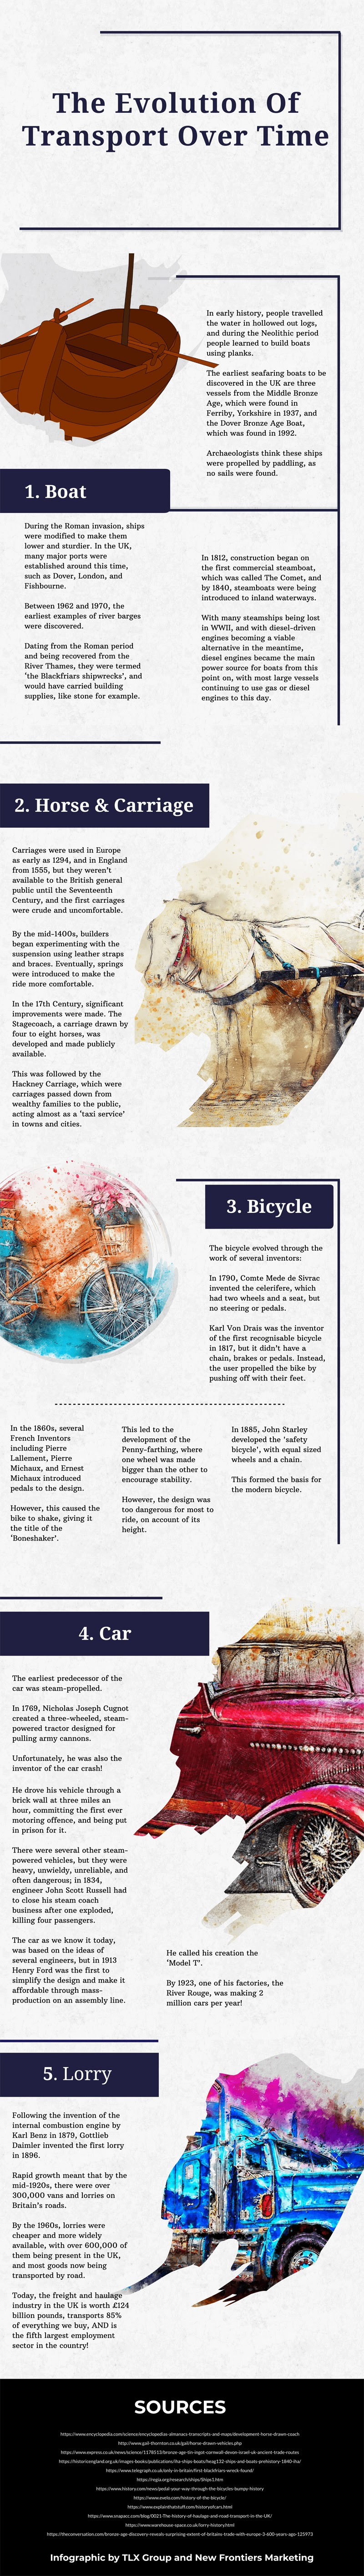 The Evolution Of Transport Over Time #infographic